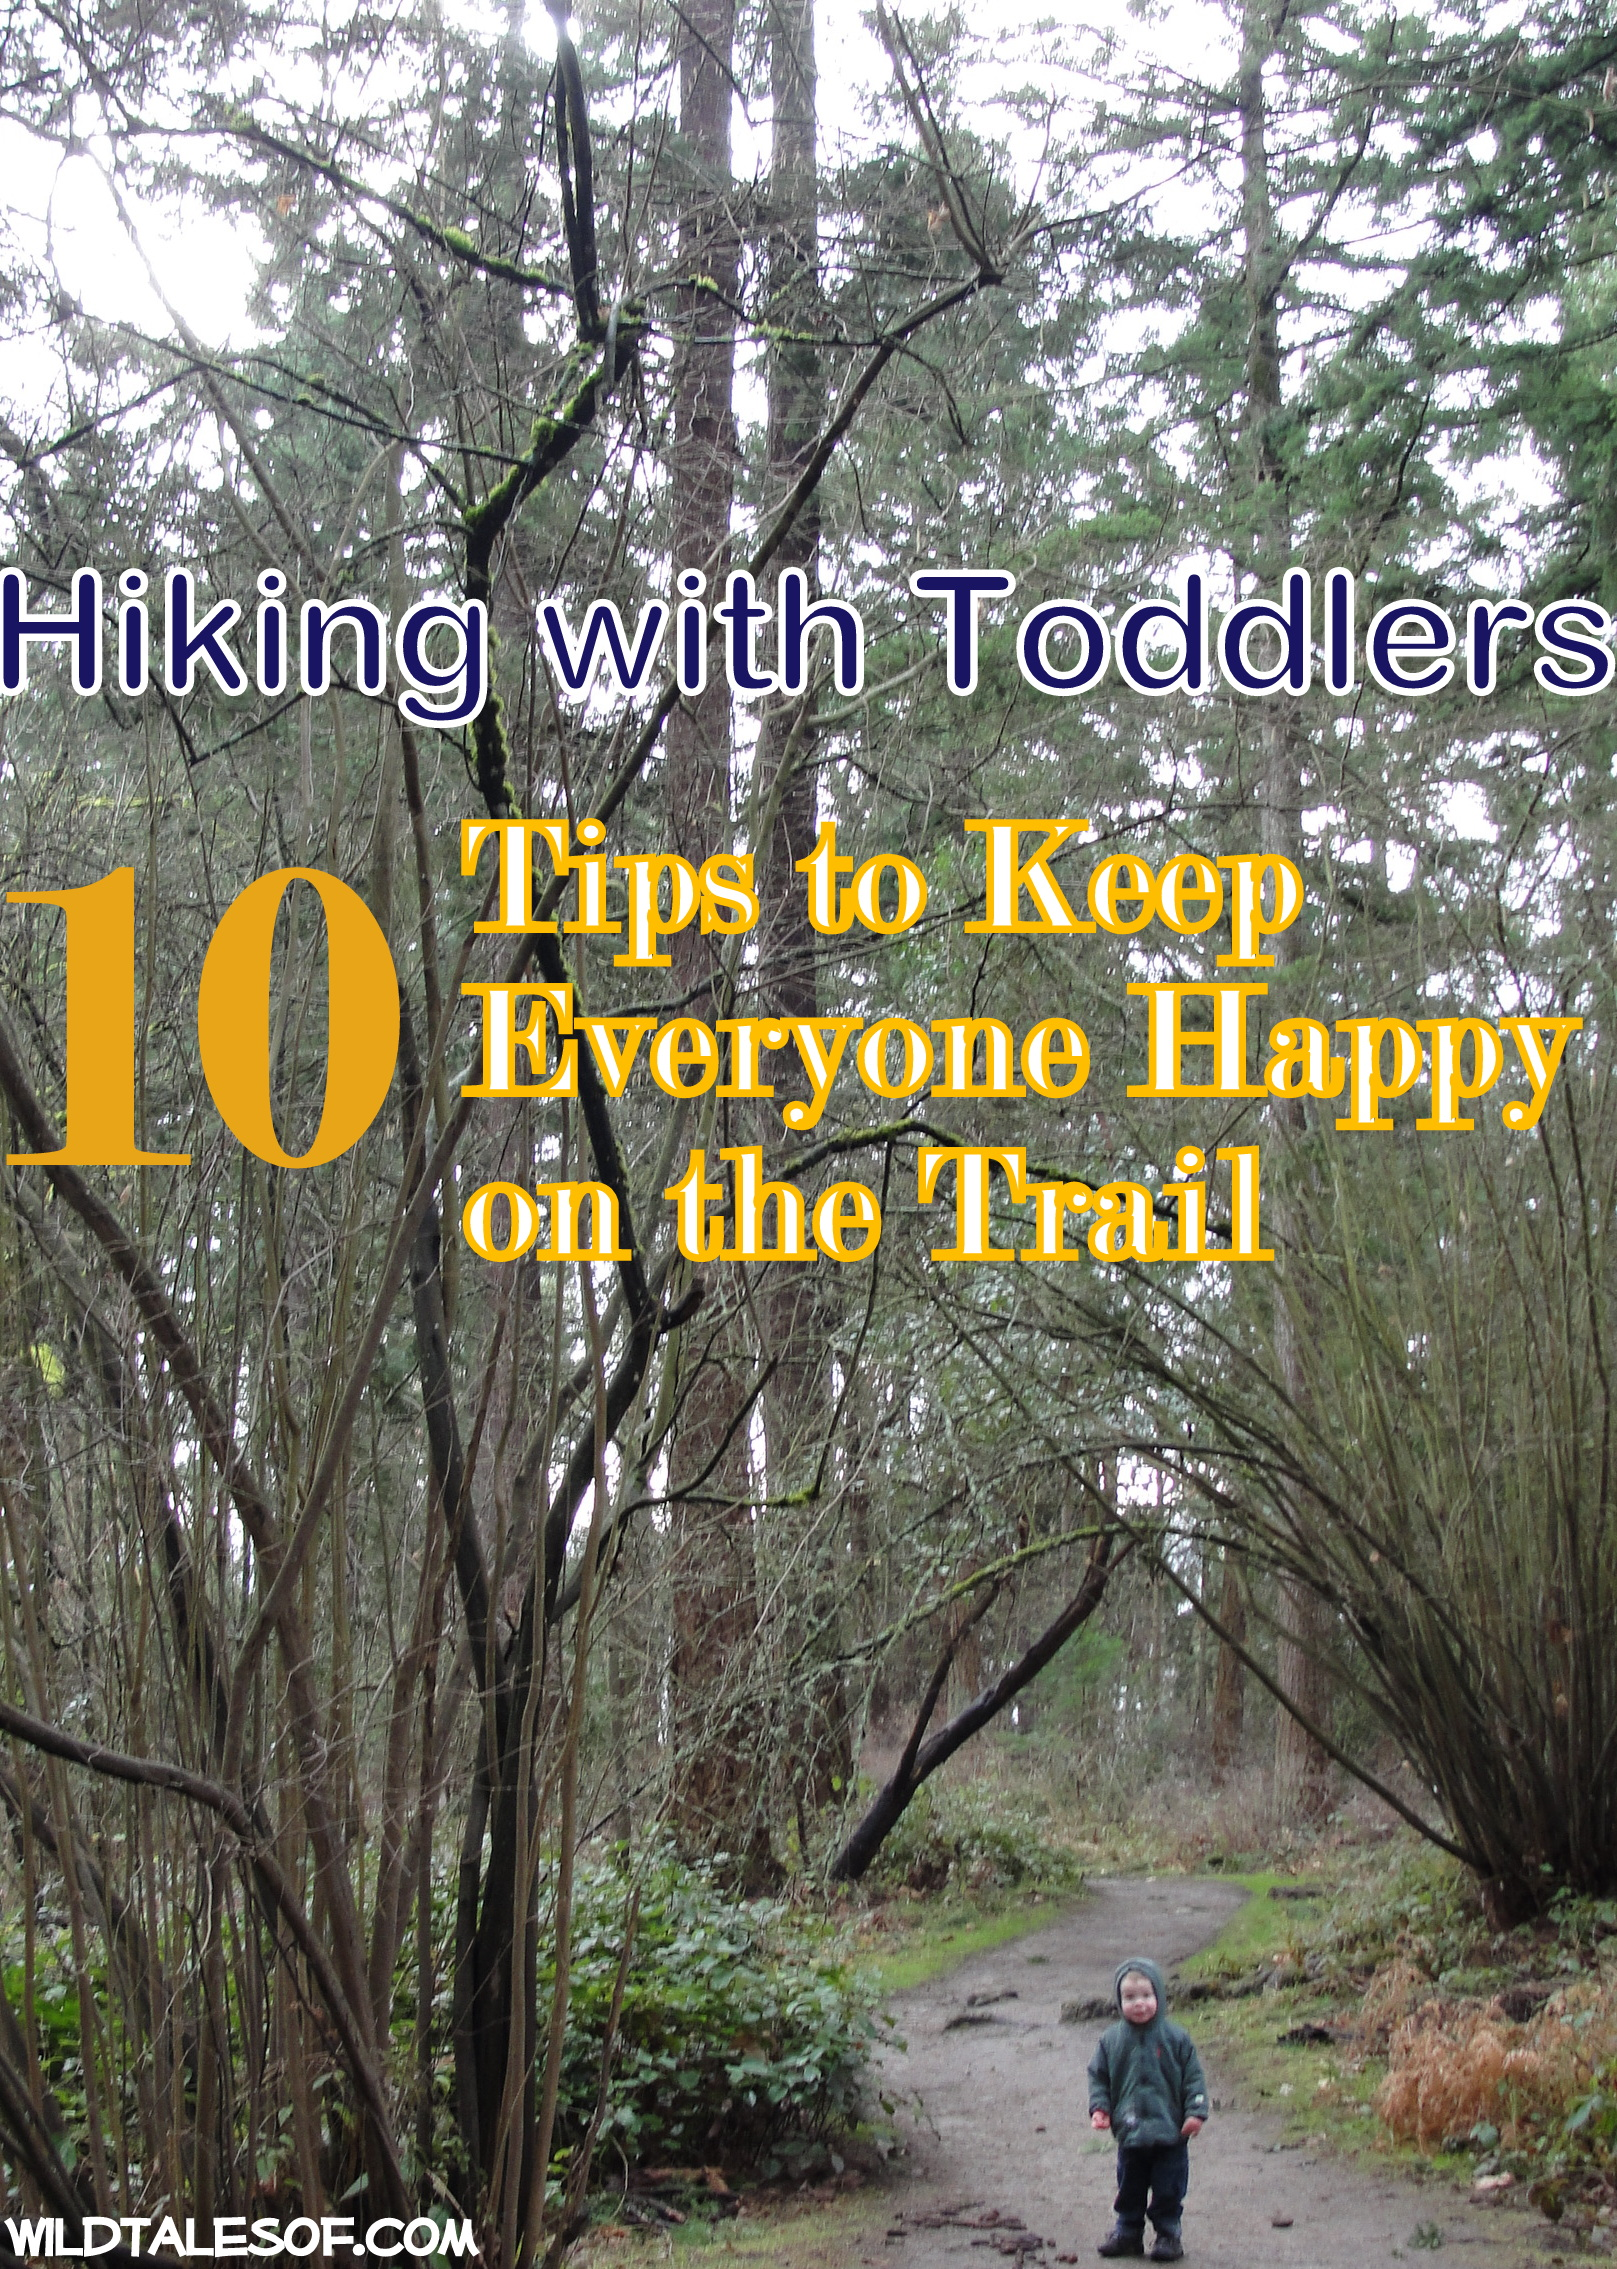 e4f0e3940b1 Hiking with Toddlers  10 Tips to Keep Everyone Happy on the Trail ...